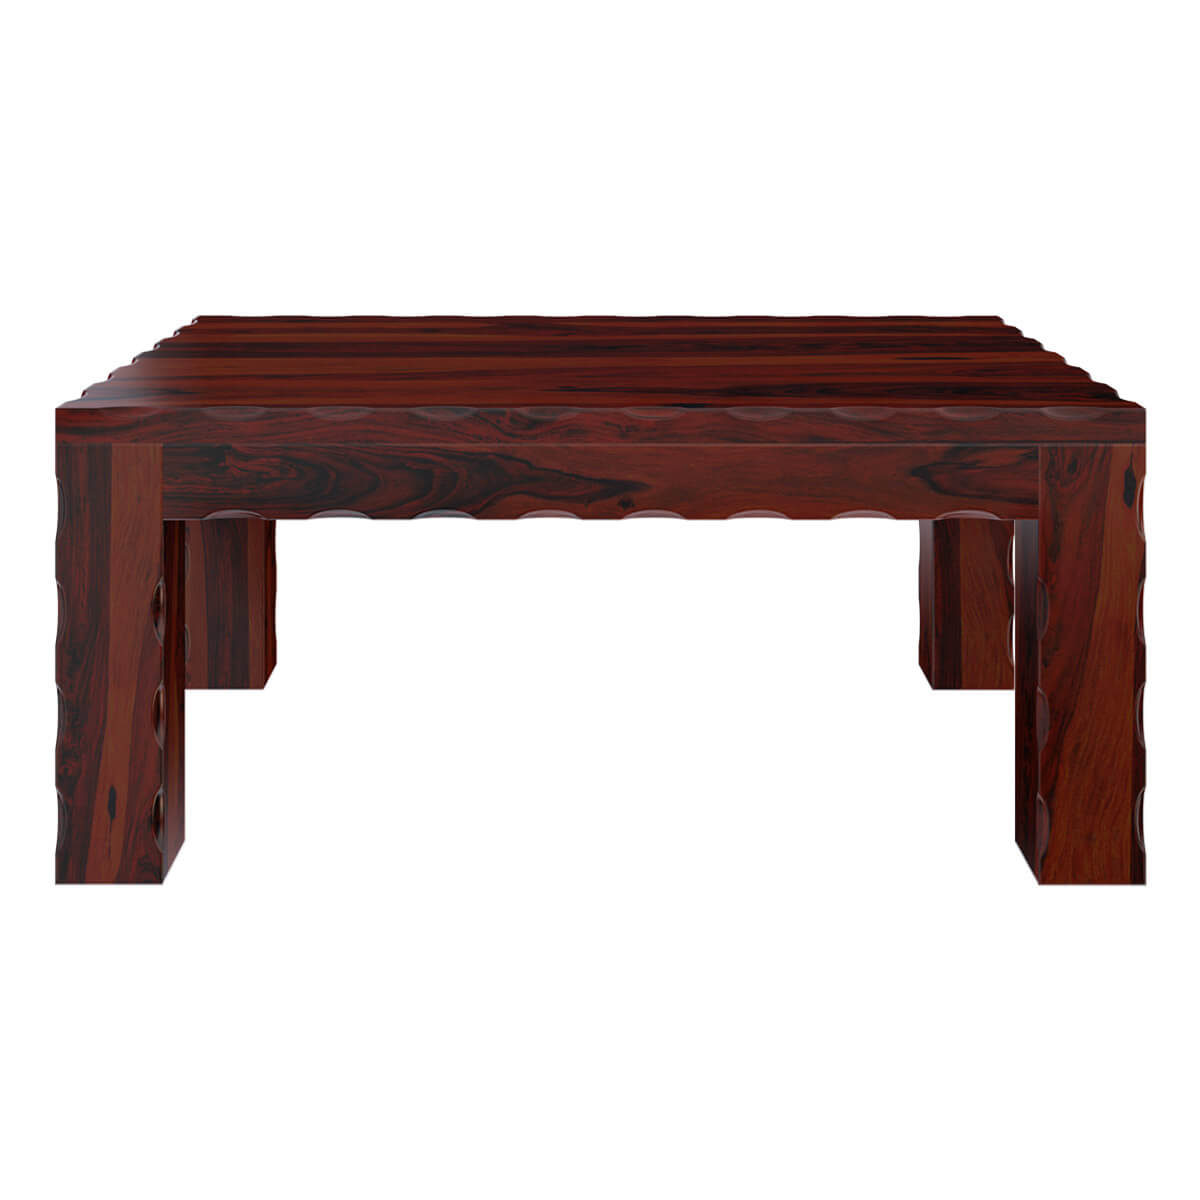 Solid Wood Block Coffee Table: Amery Unique Handcrafted Block Legs Solid Wood Coffee Table